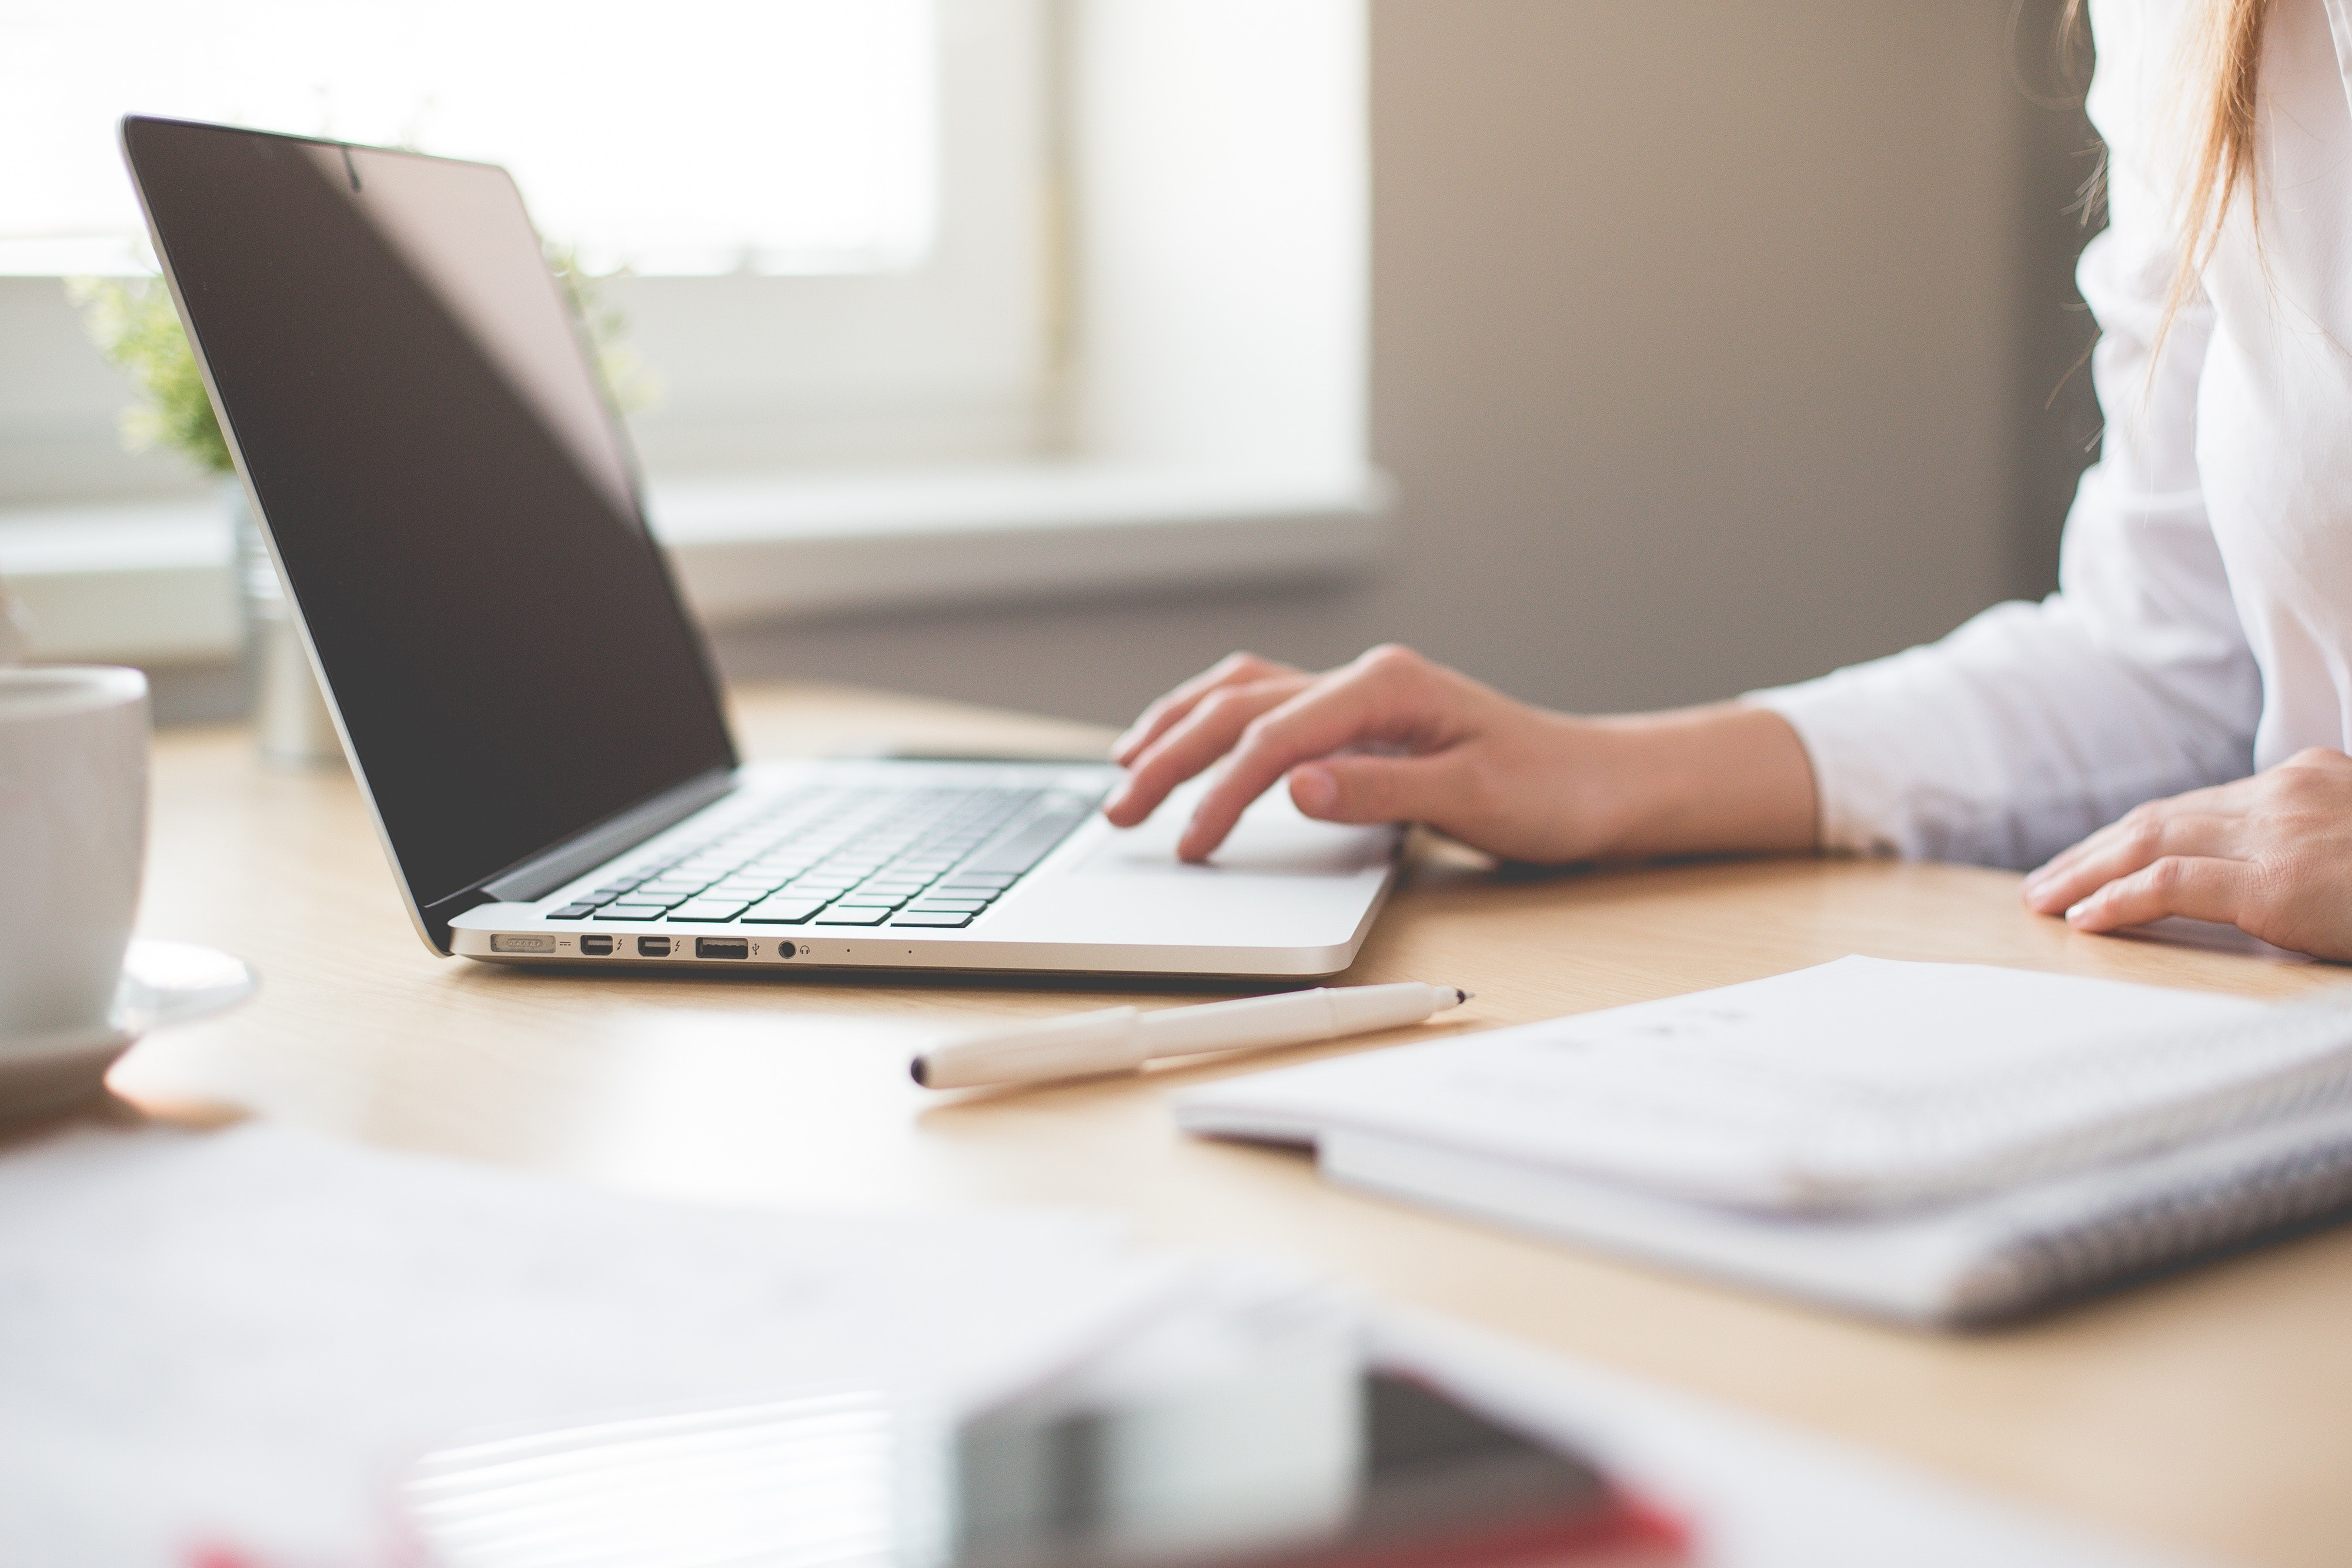 4 Ways to Be More Productive While Working From Home